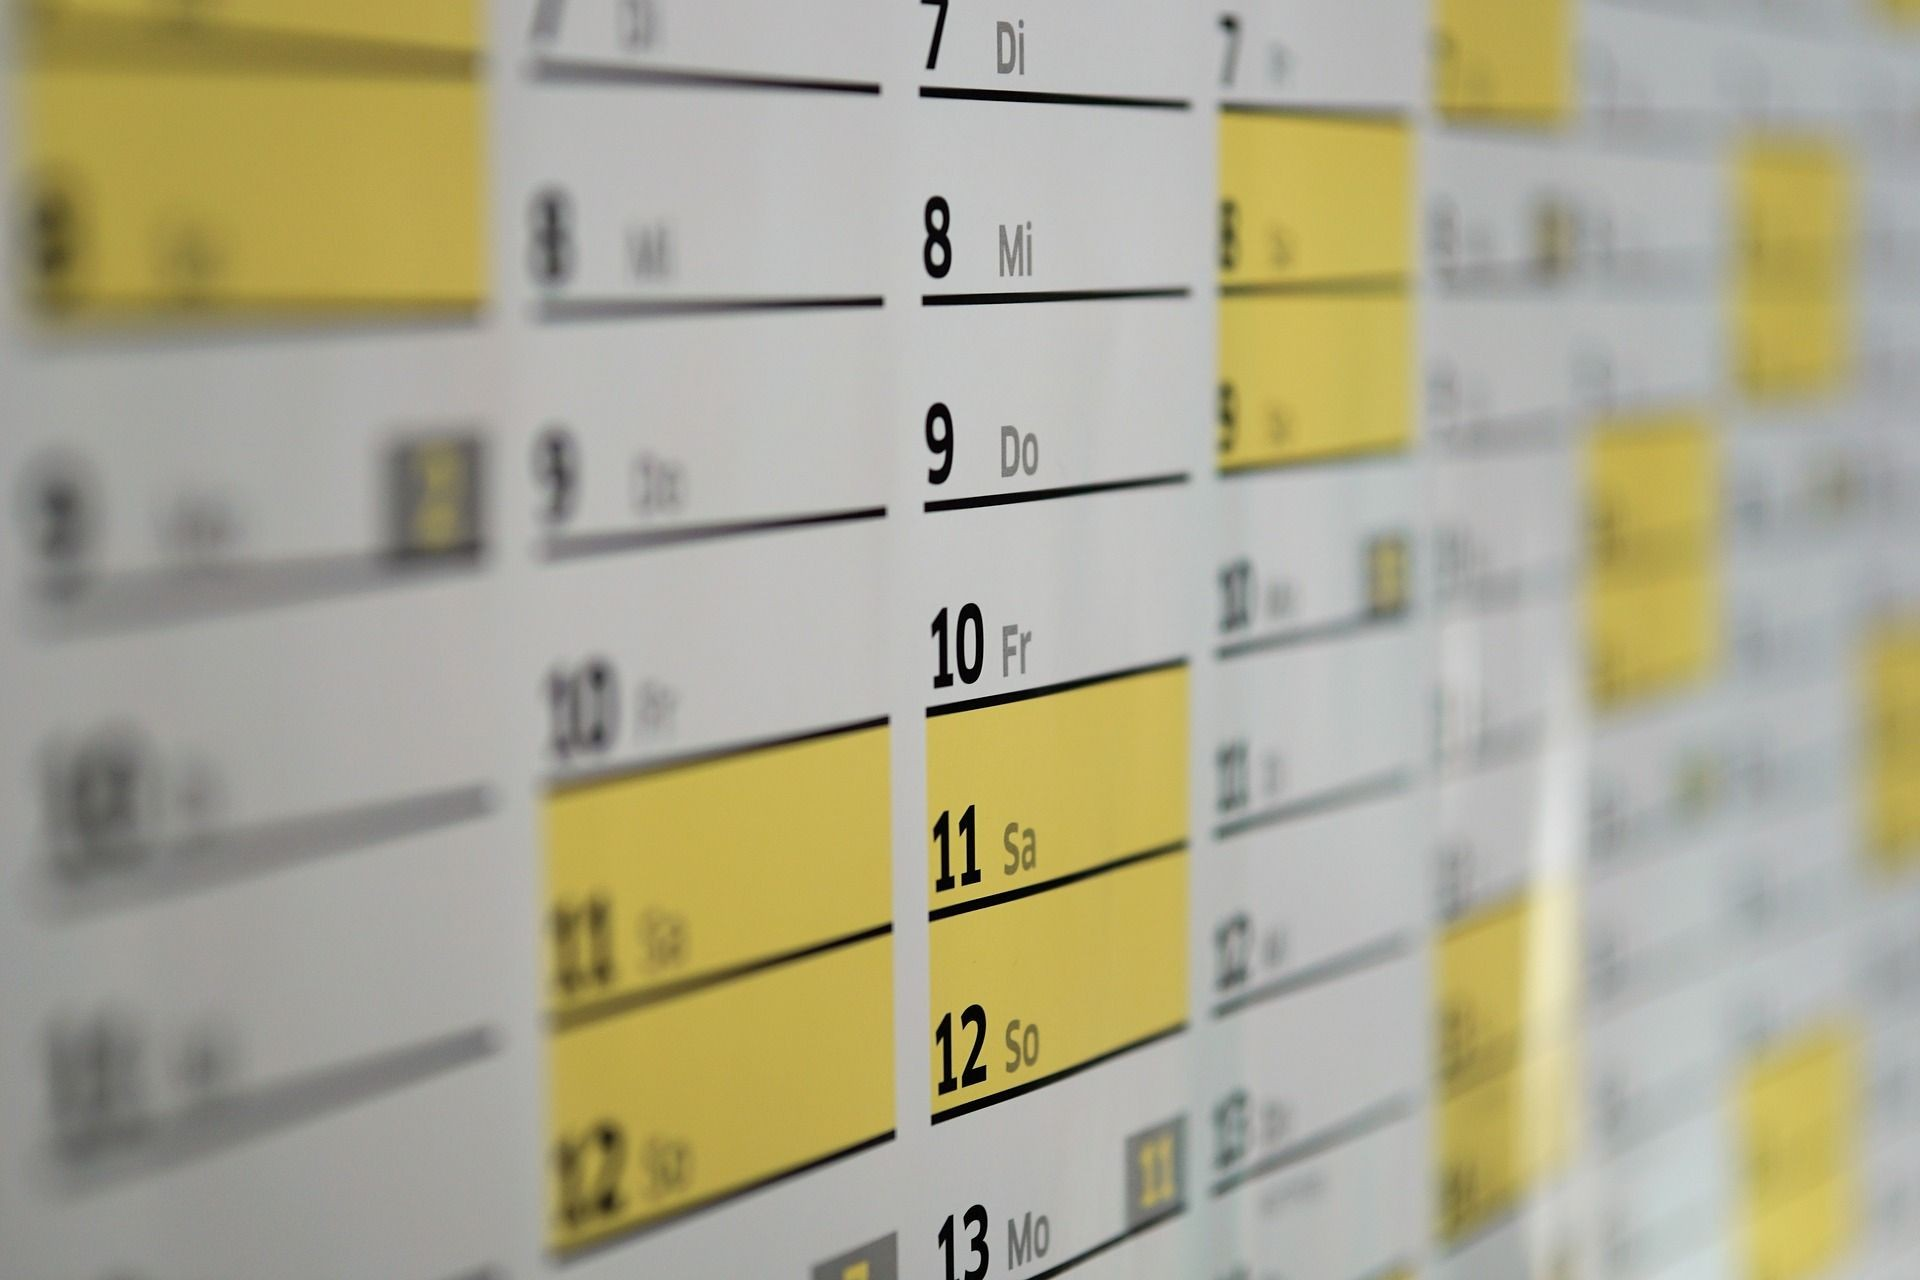 Calendario 2019 Con Festivos Galicia Más Caliente Consulta El Calendario Laboral 2019 Of Calendario 2019 Con Festivos Galicia Más Reciente Calendario Anual De Pared Con D­as Festivos Din A0 Blanco Y Gris